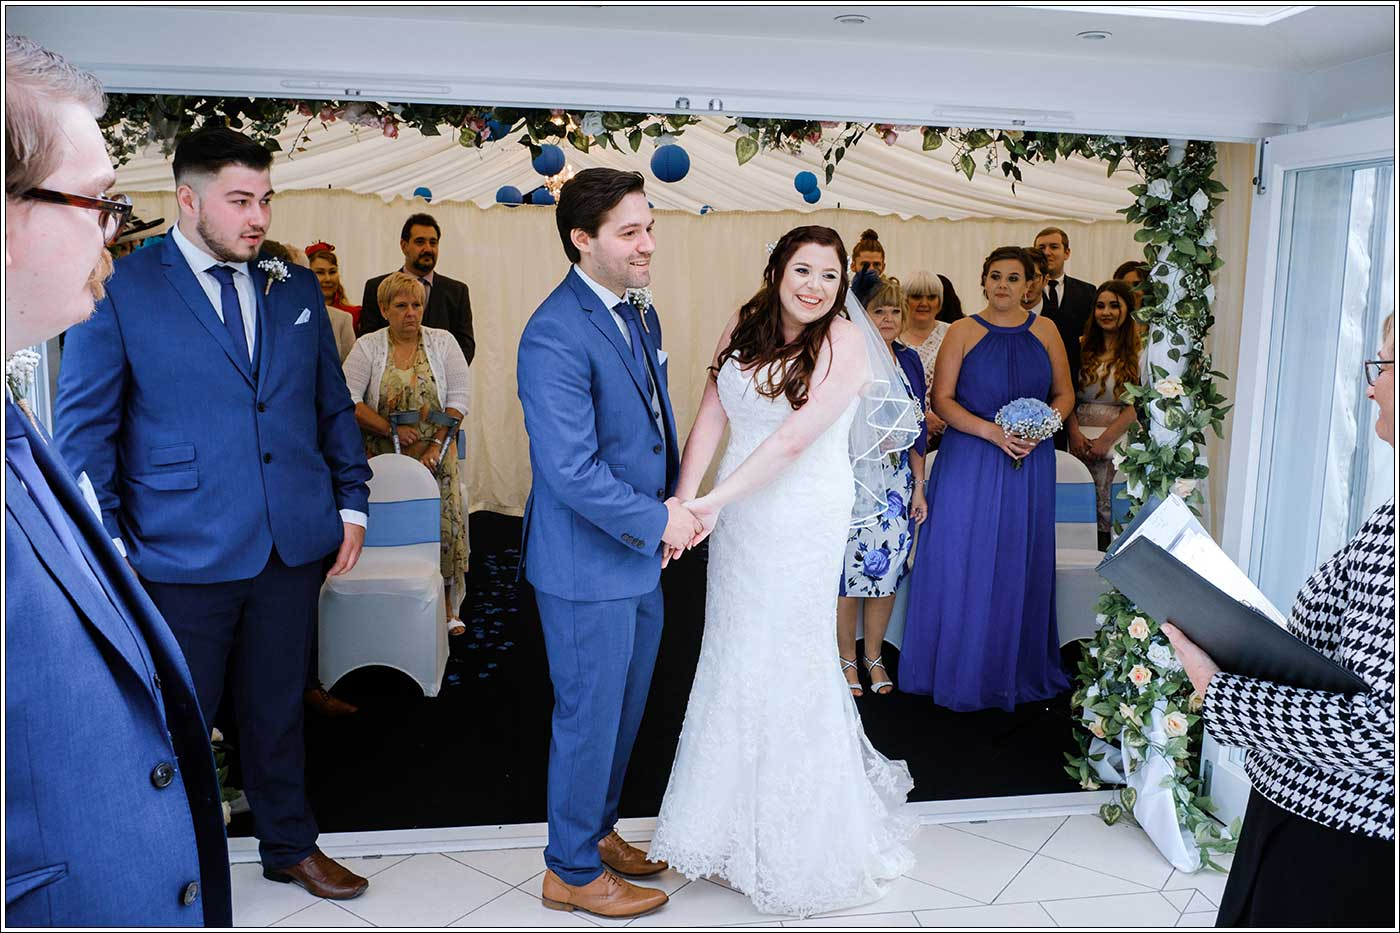 Bride and groom during their wedding ceremony at Park Hall Farm